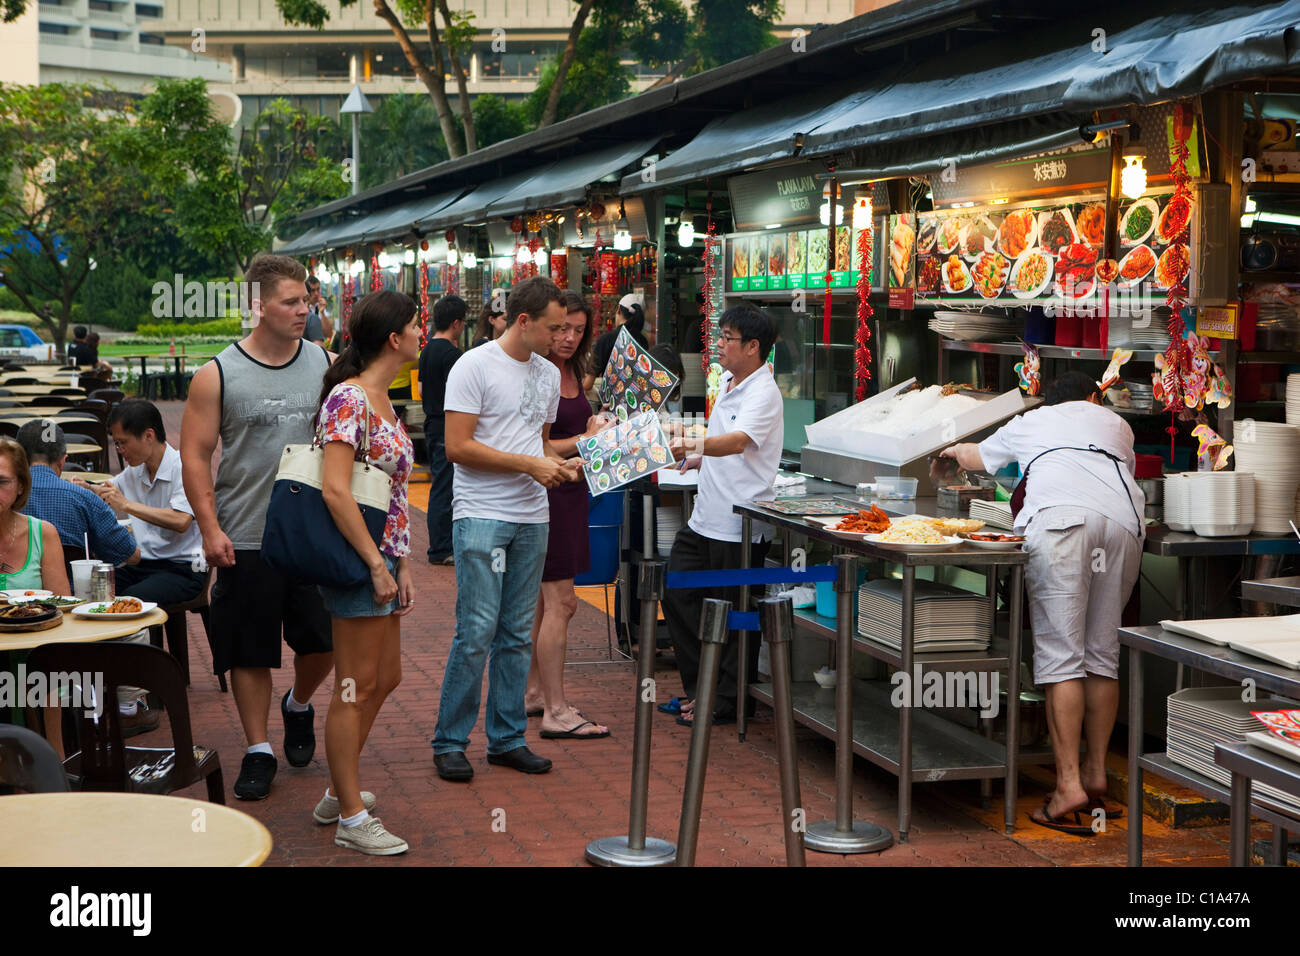 Food stalls at Makansutra Gluttons Bay food court.  Marina Bay, Singapore - Stock Image